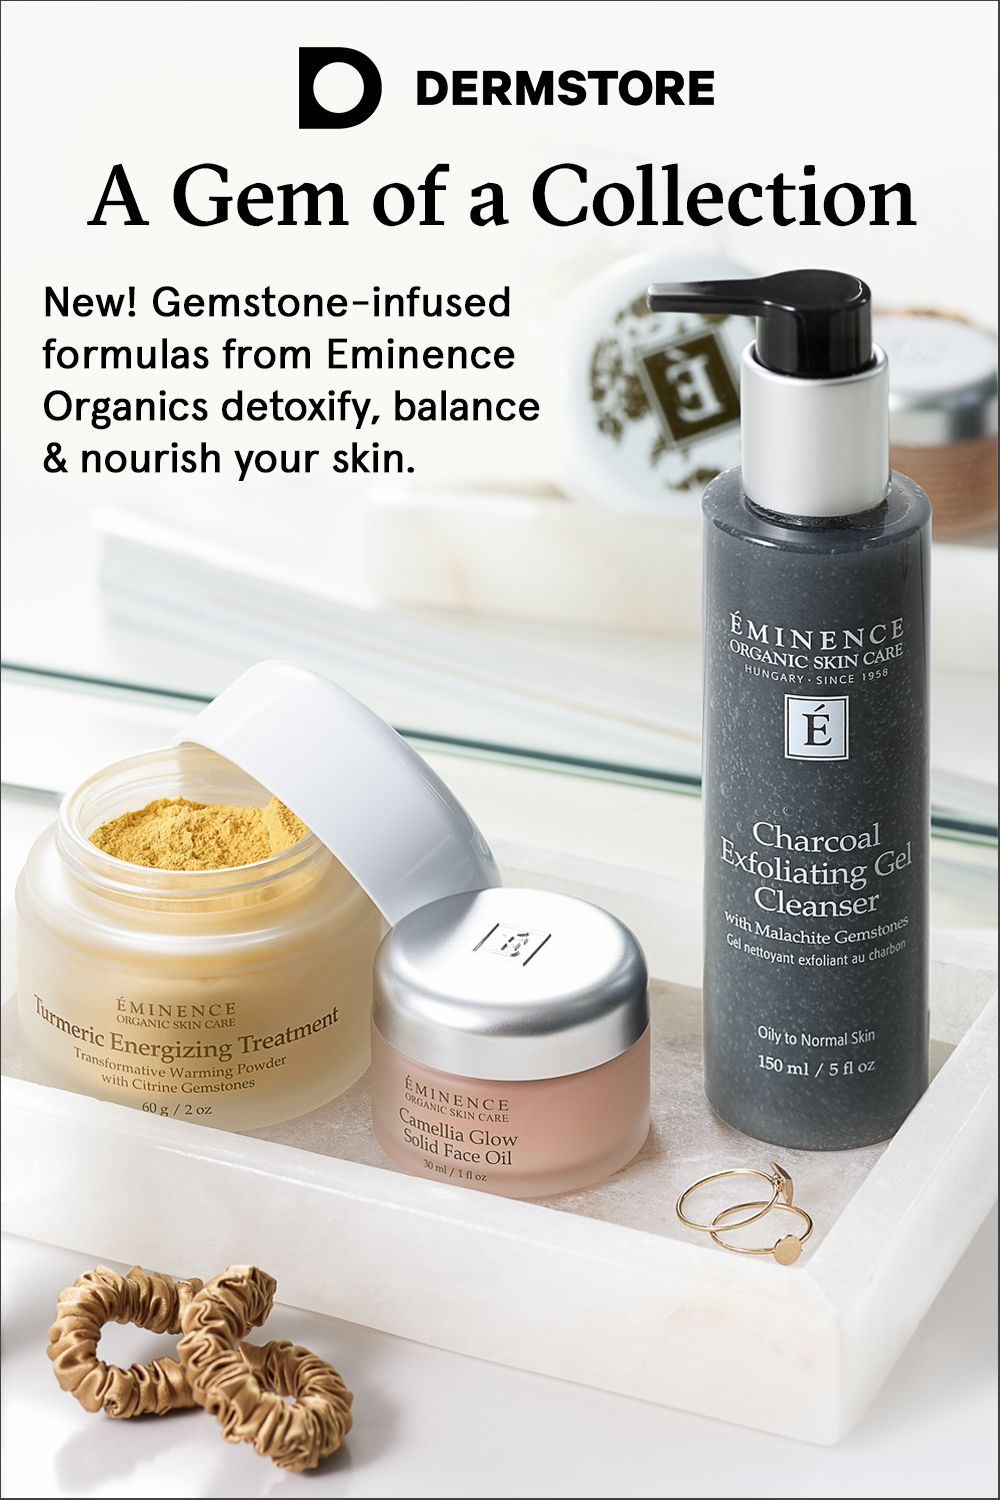 New At Dermstore Eminence Organic Skin Care Gemstone Infused Formulas